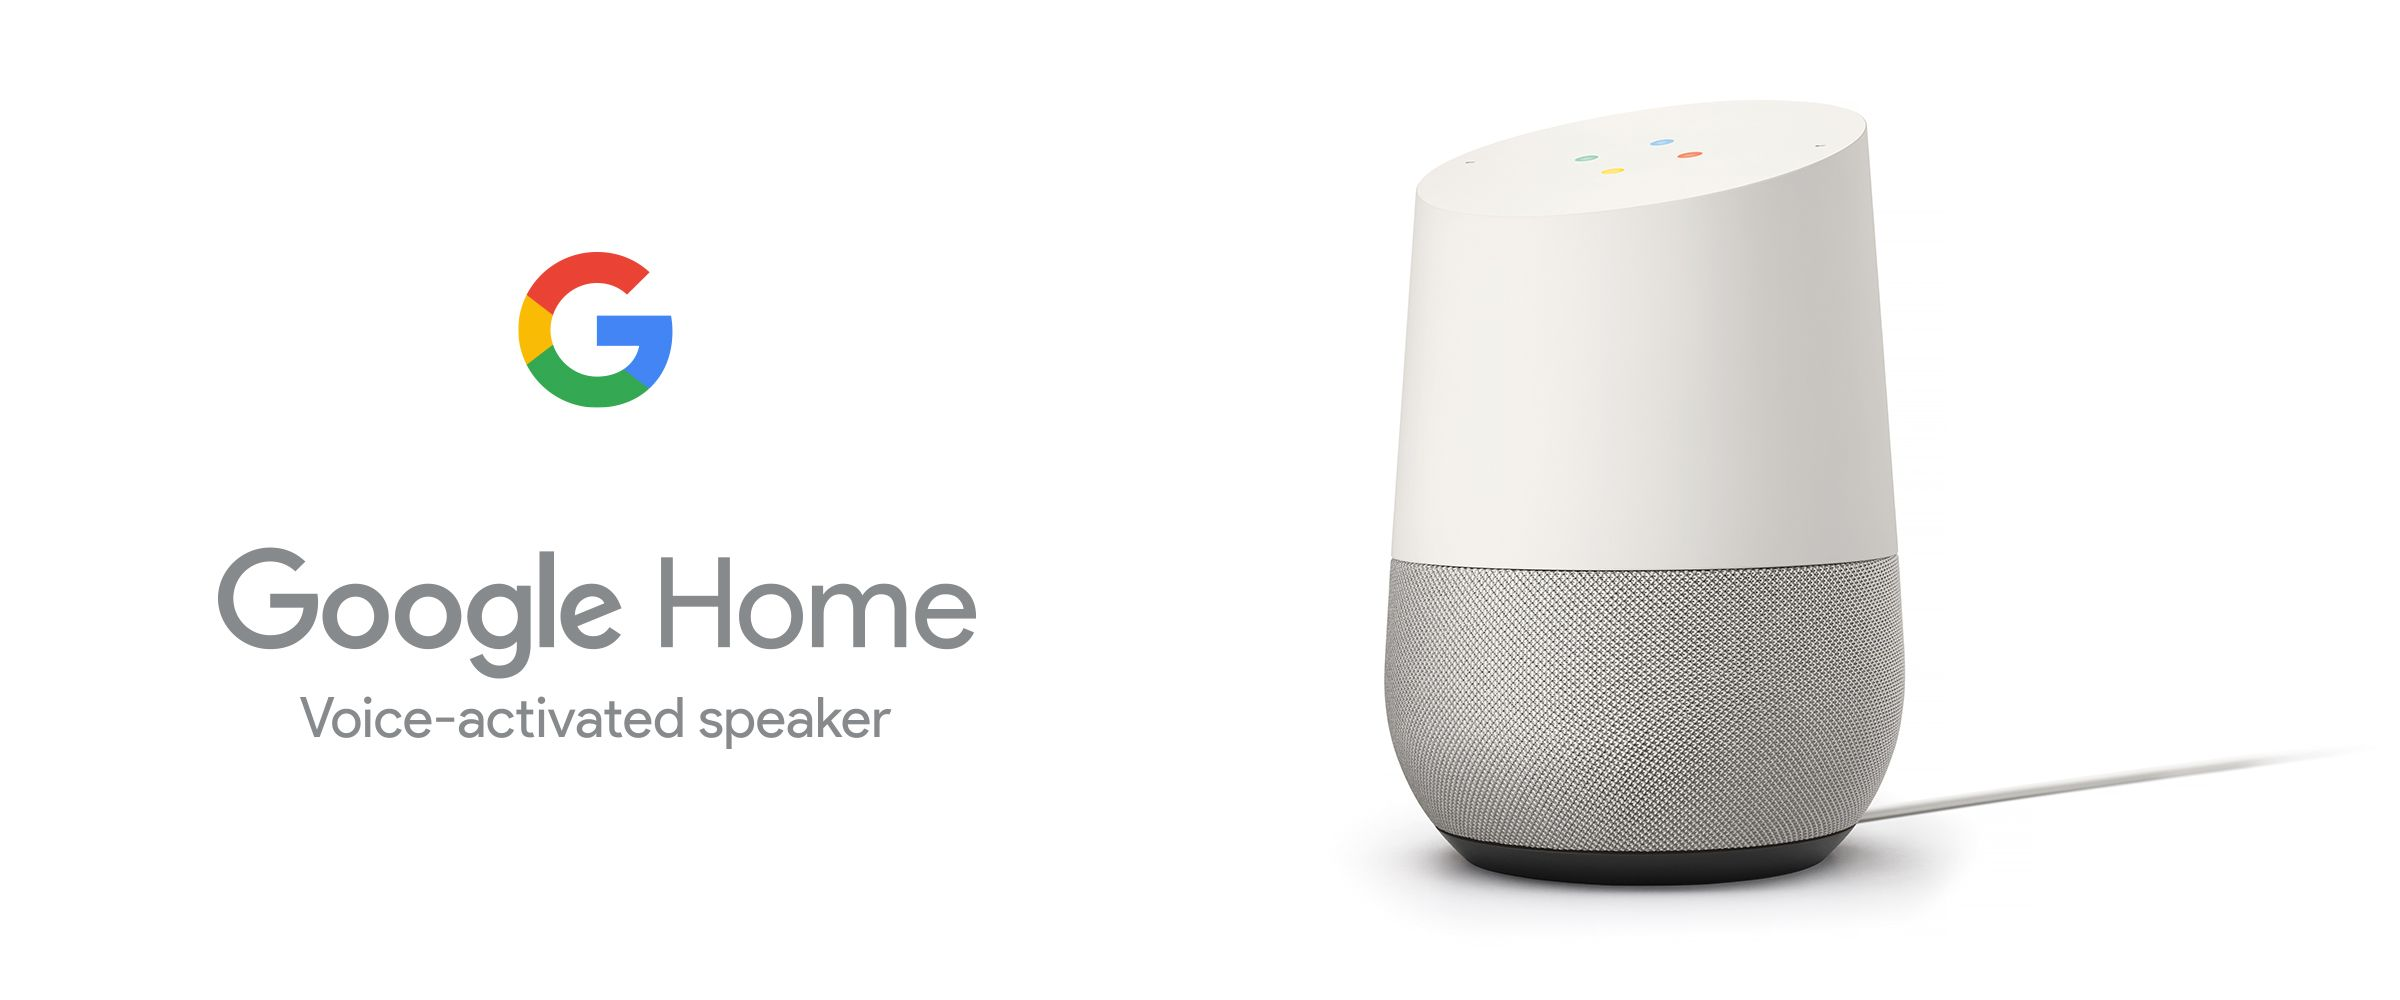 Google Home - Voice-activated speaker